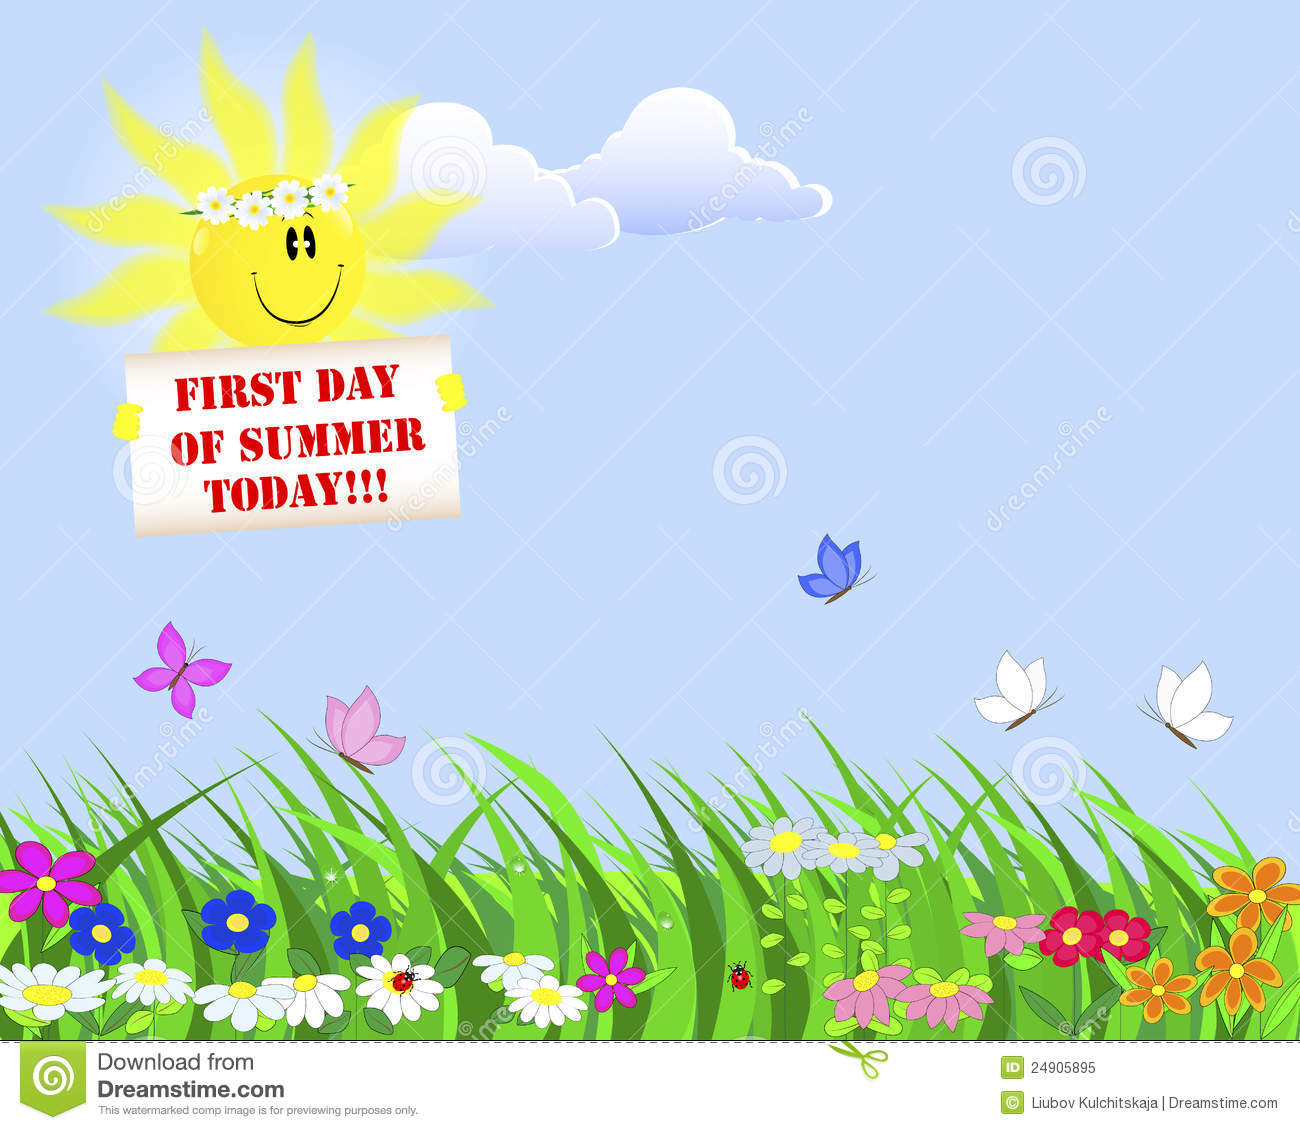 First Day Of Summer. Royalty Free Stock Photo - Image: 24905895